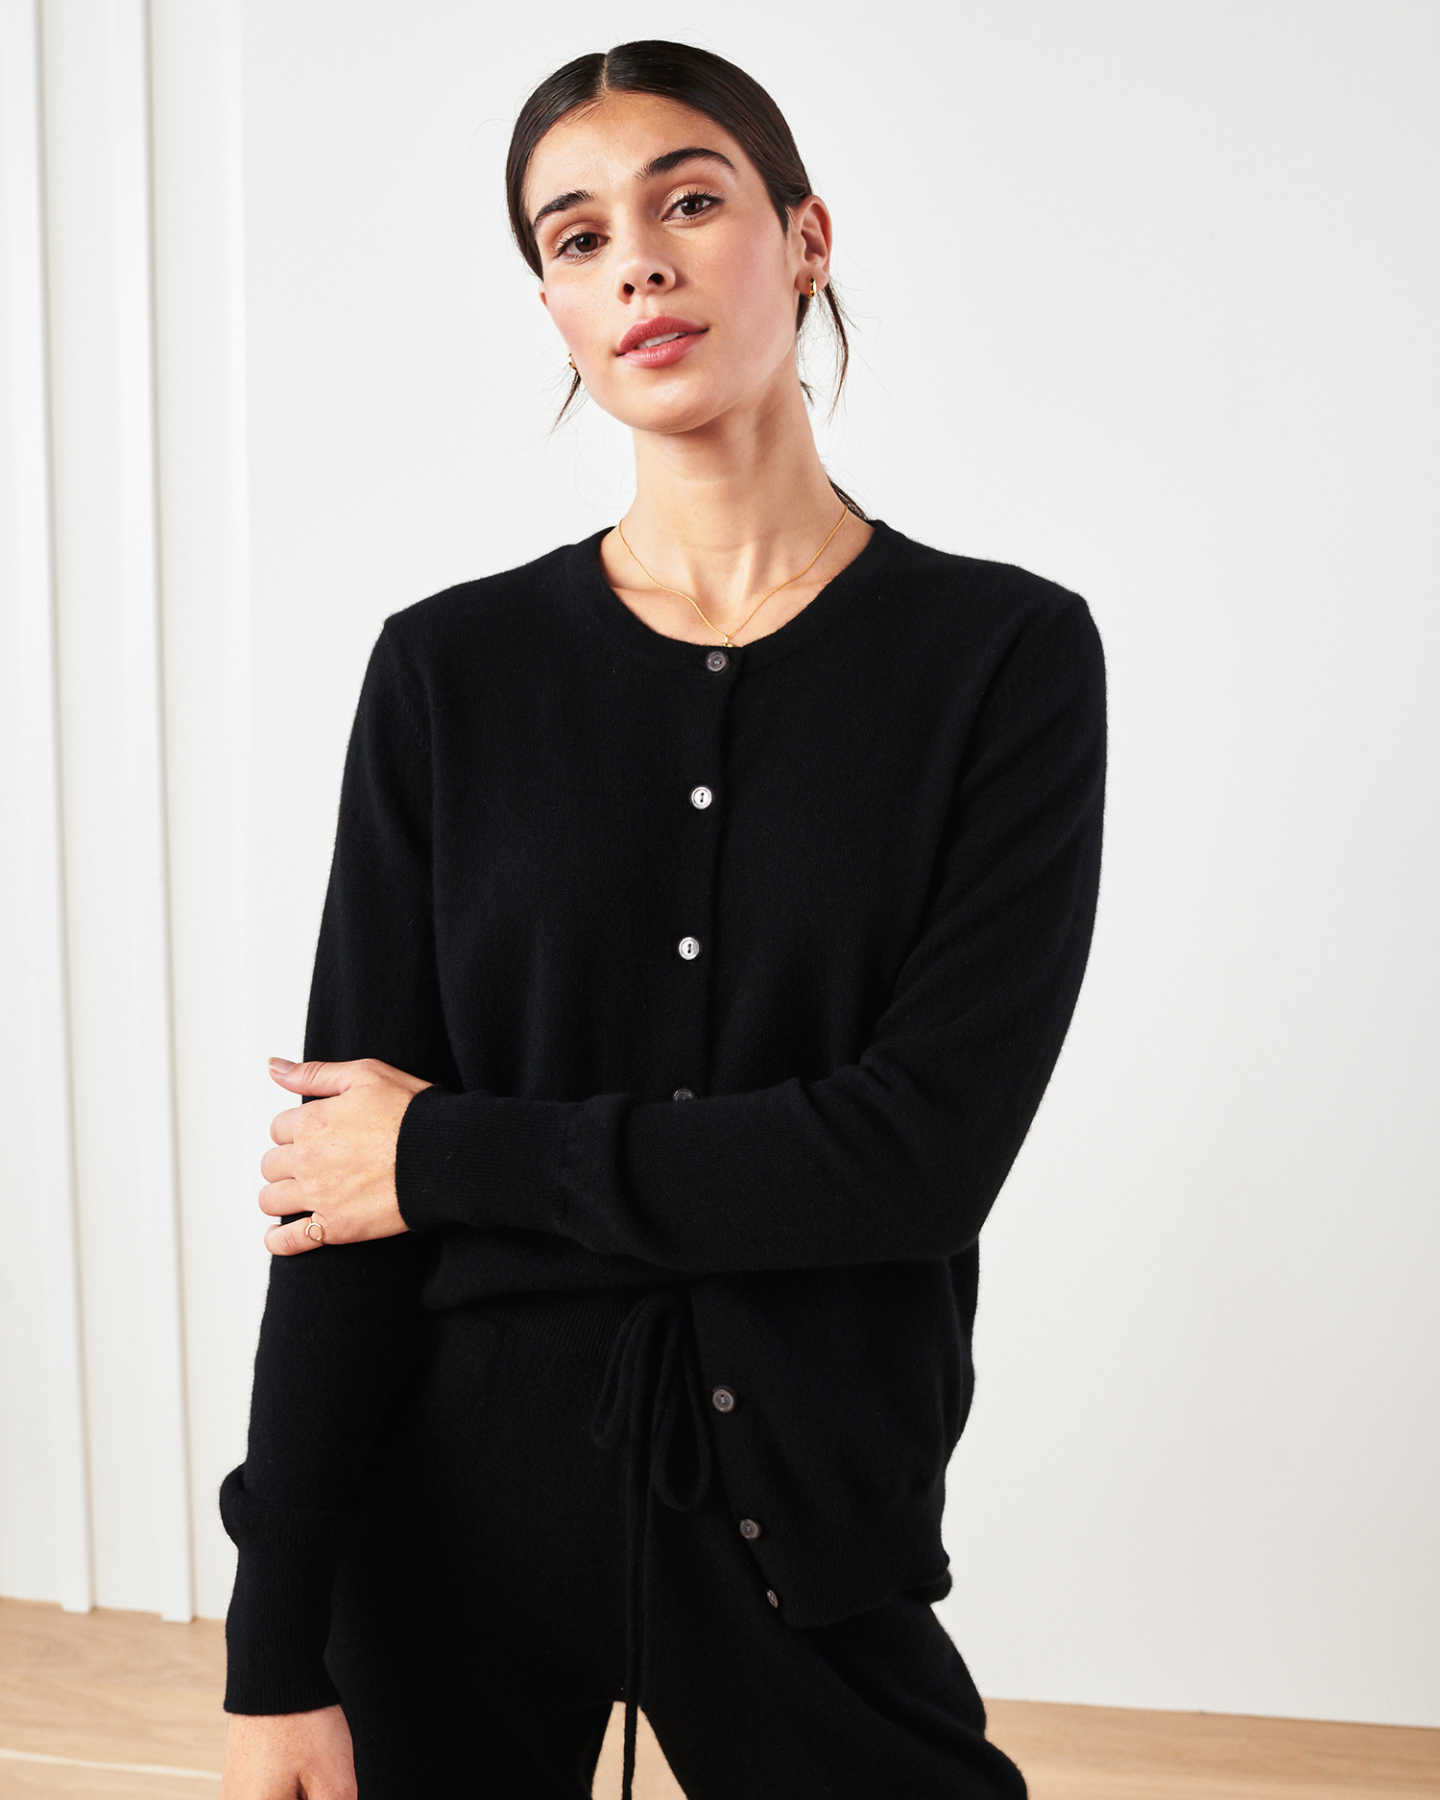 Woman wearing black cashmere cardigan sweater and black cashmere sweatpants smiling